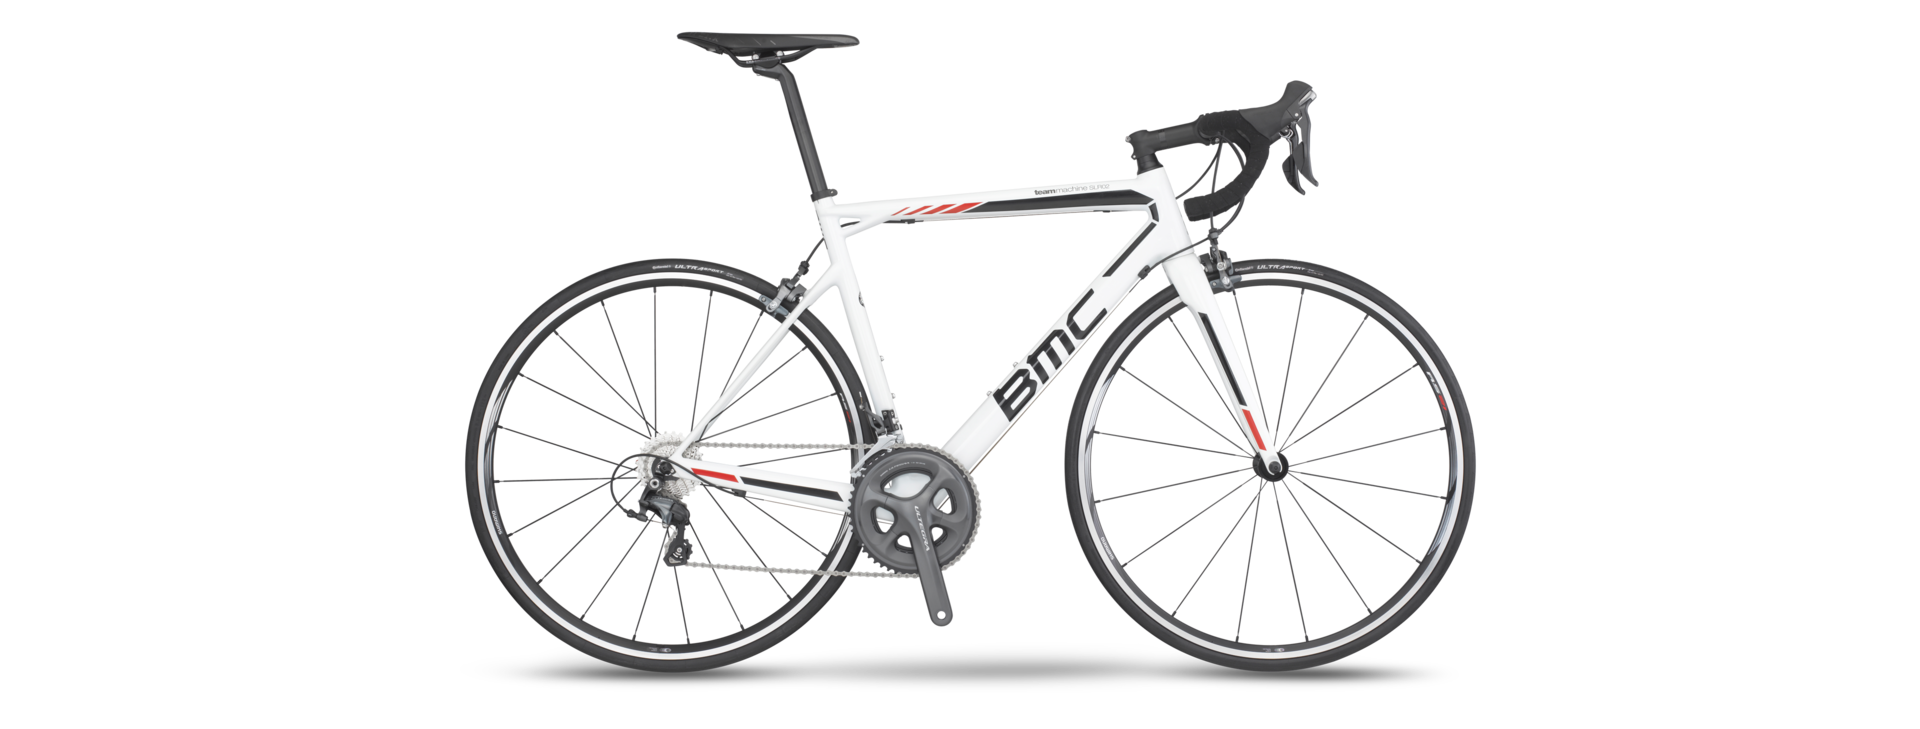 csm_Bike_Zoom_Headerimage_3800_1441_MY16_SLR02_Ultegra_side_b08378906a